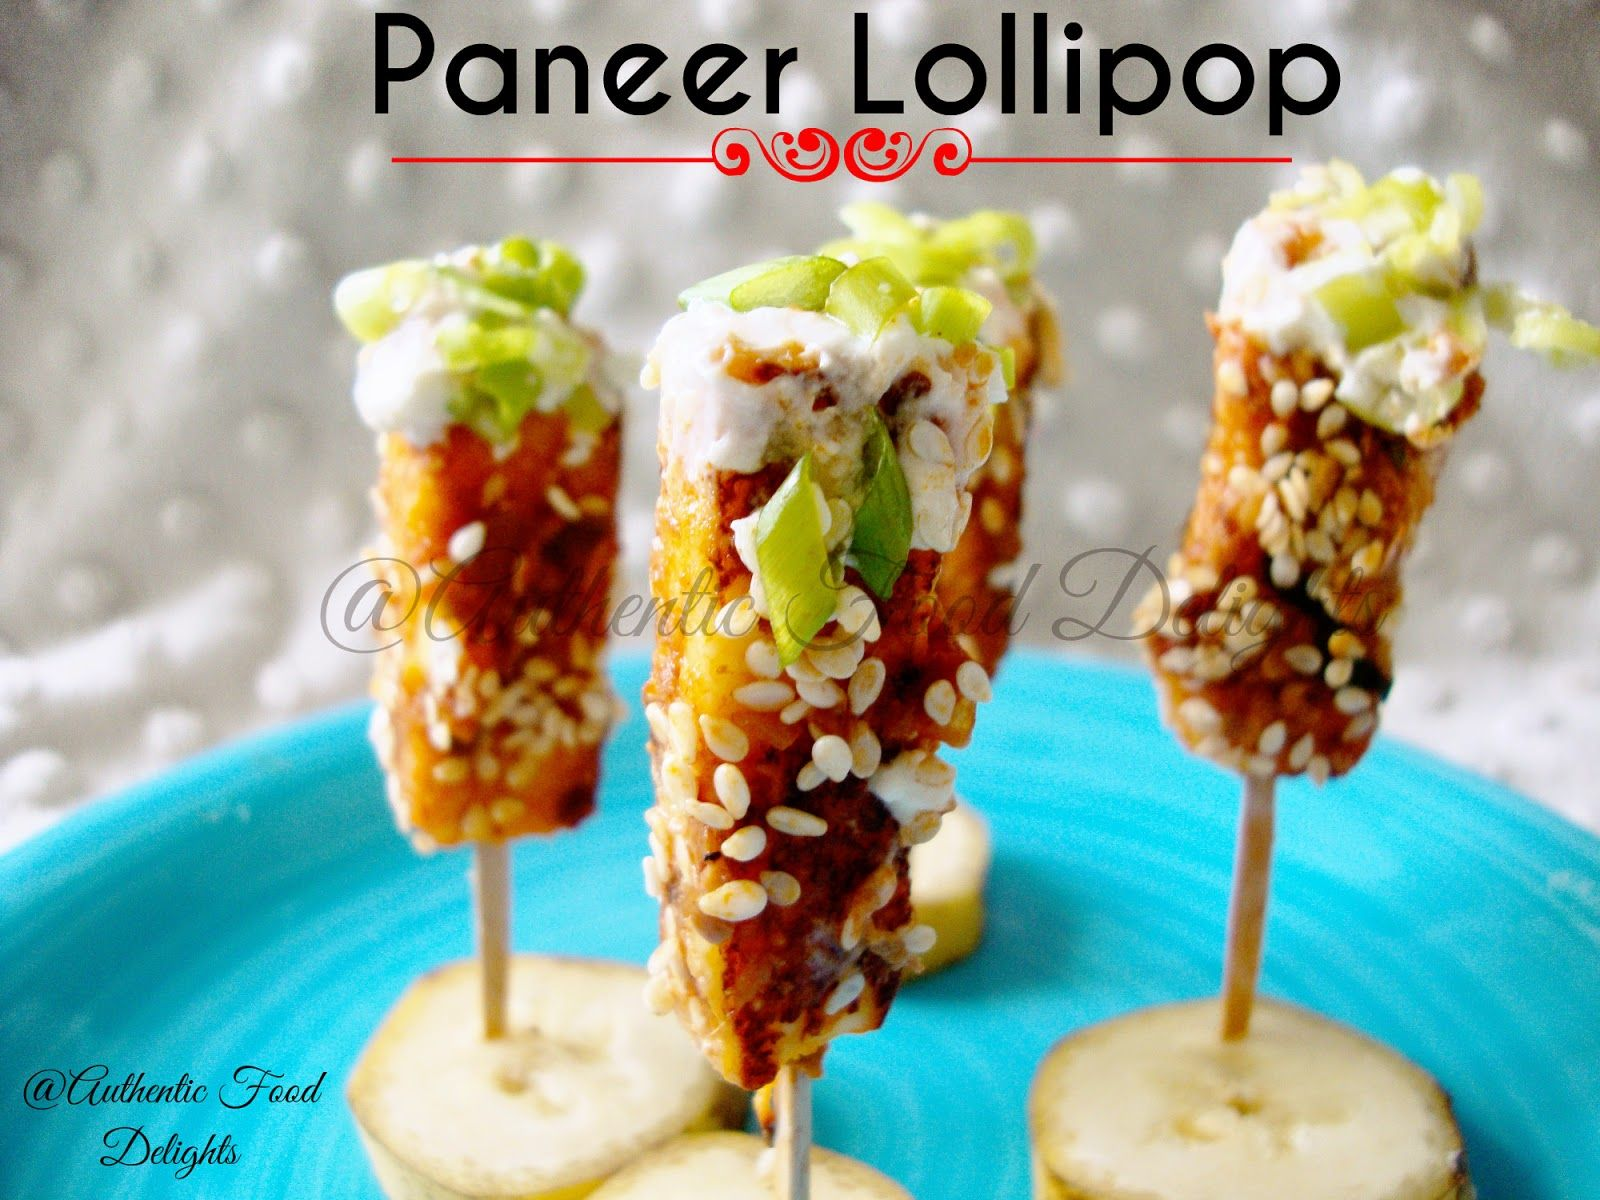 finger food ideas for bridal shower%0A Creative Indian Food To Serve At Your Wedding       Ideas To Bookmark   People     Diced chicken  Tapas bar and Tapas